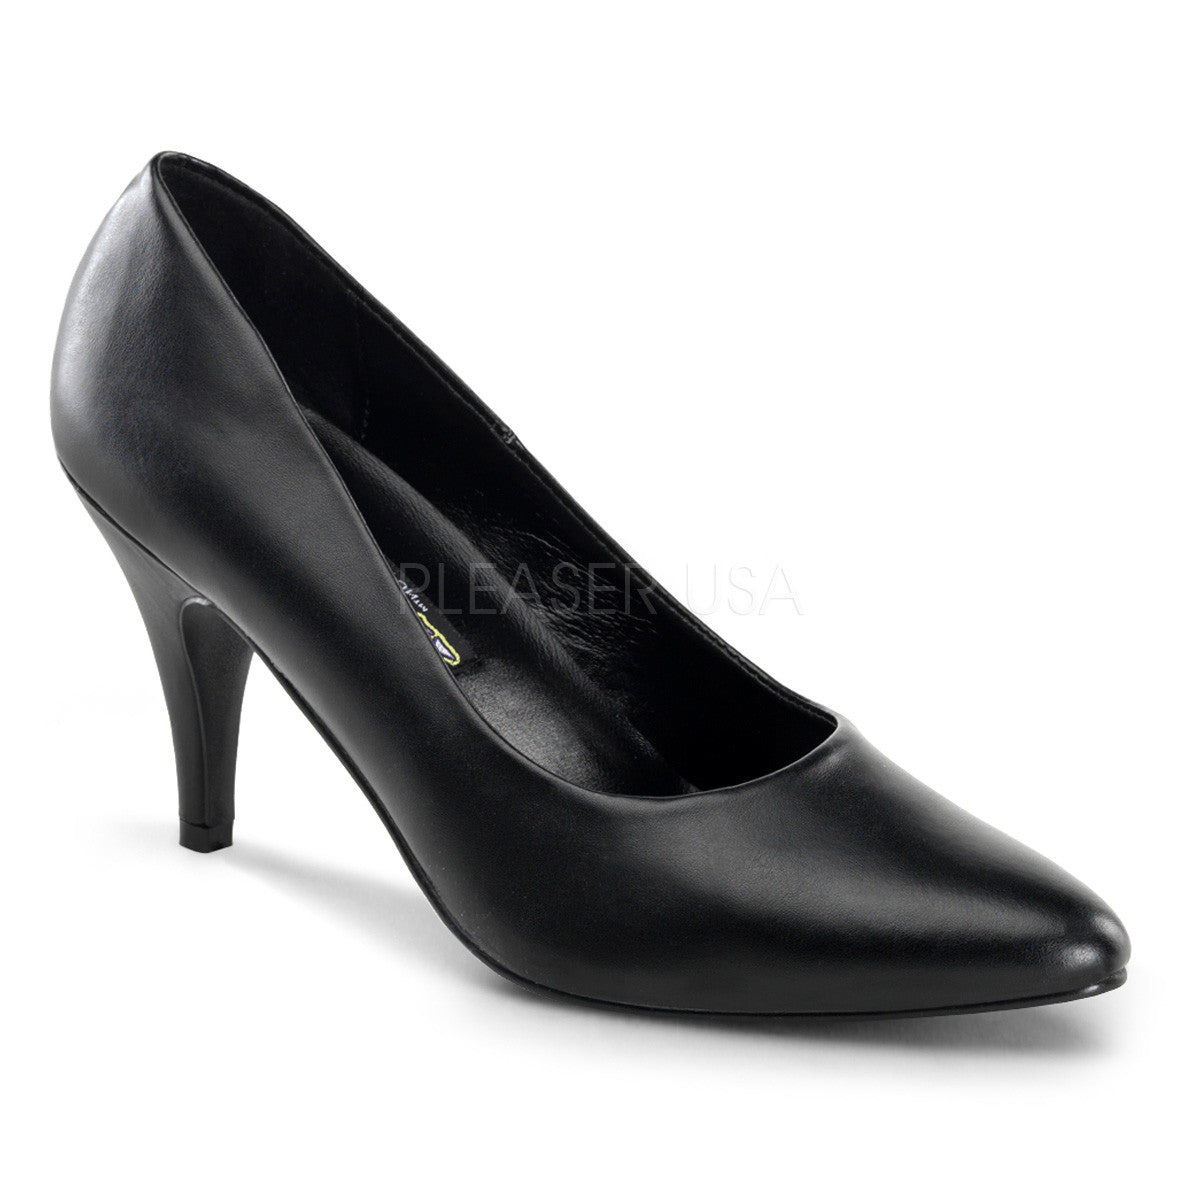 FUNTASMA PUMP-420 Black Pu Classic Pumps - Shoecup.com